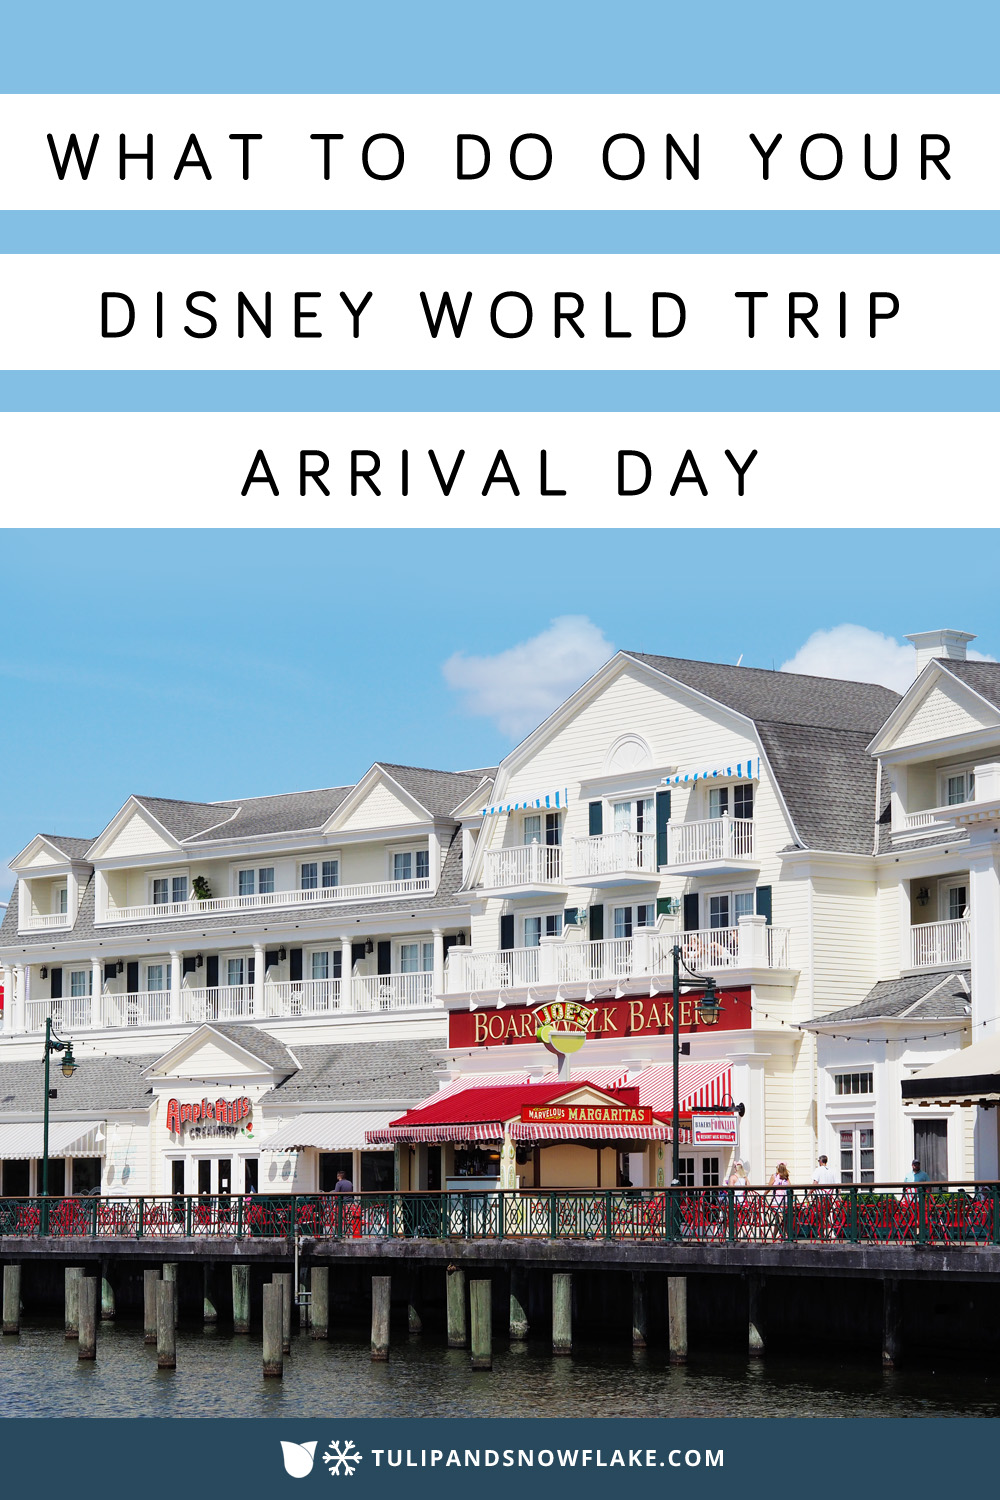 What to do on your Disney World trip arrival day